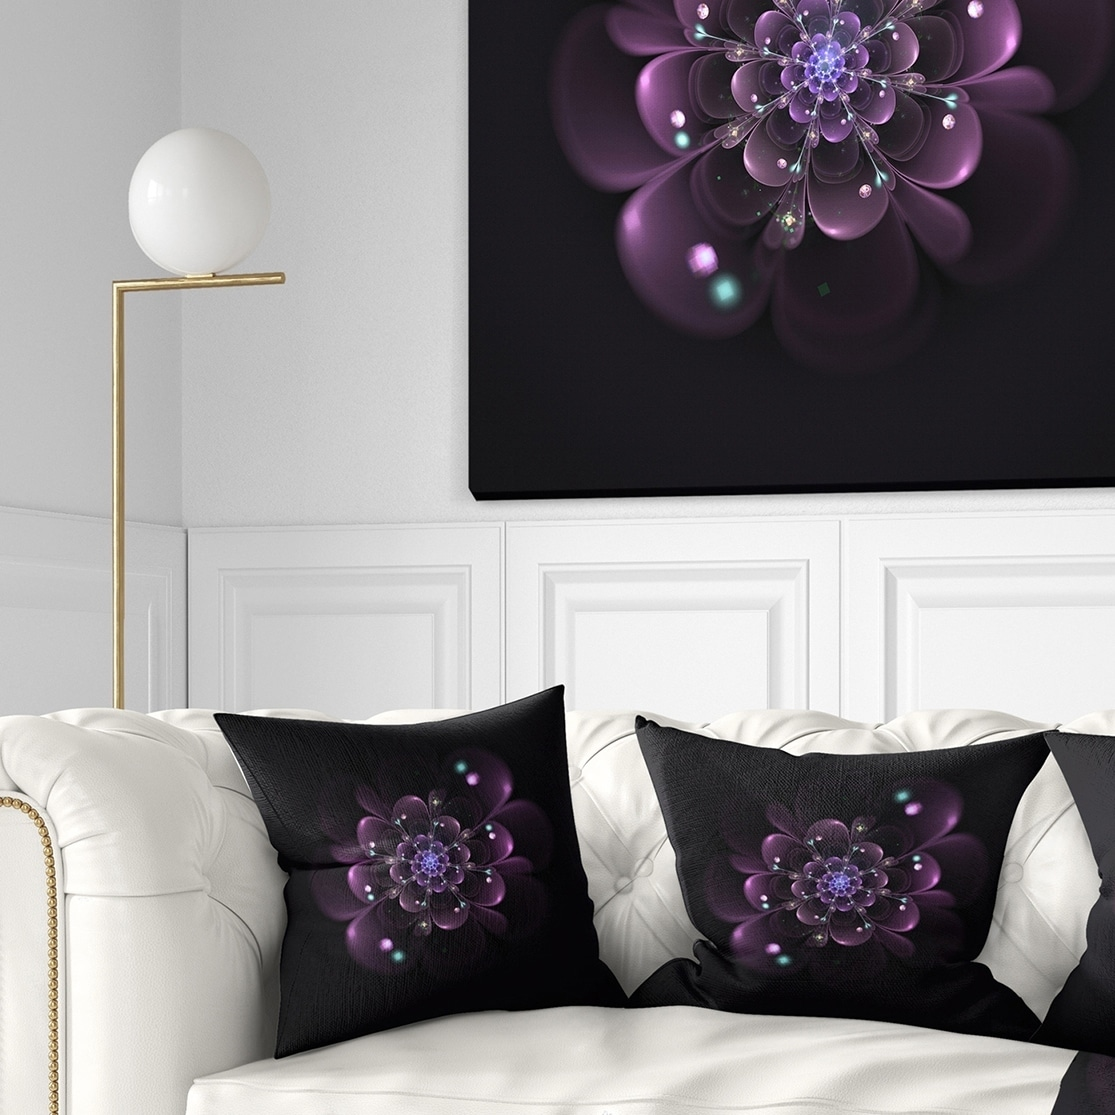 Design Art Designart Glowing Light Purple Fractal Flower On Black Floral Throw Pillow Walmart Com Walmart Com